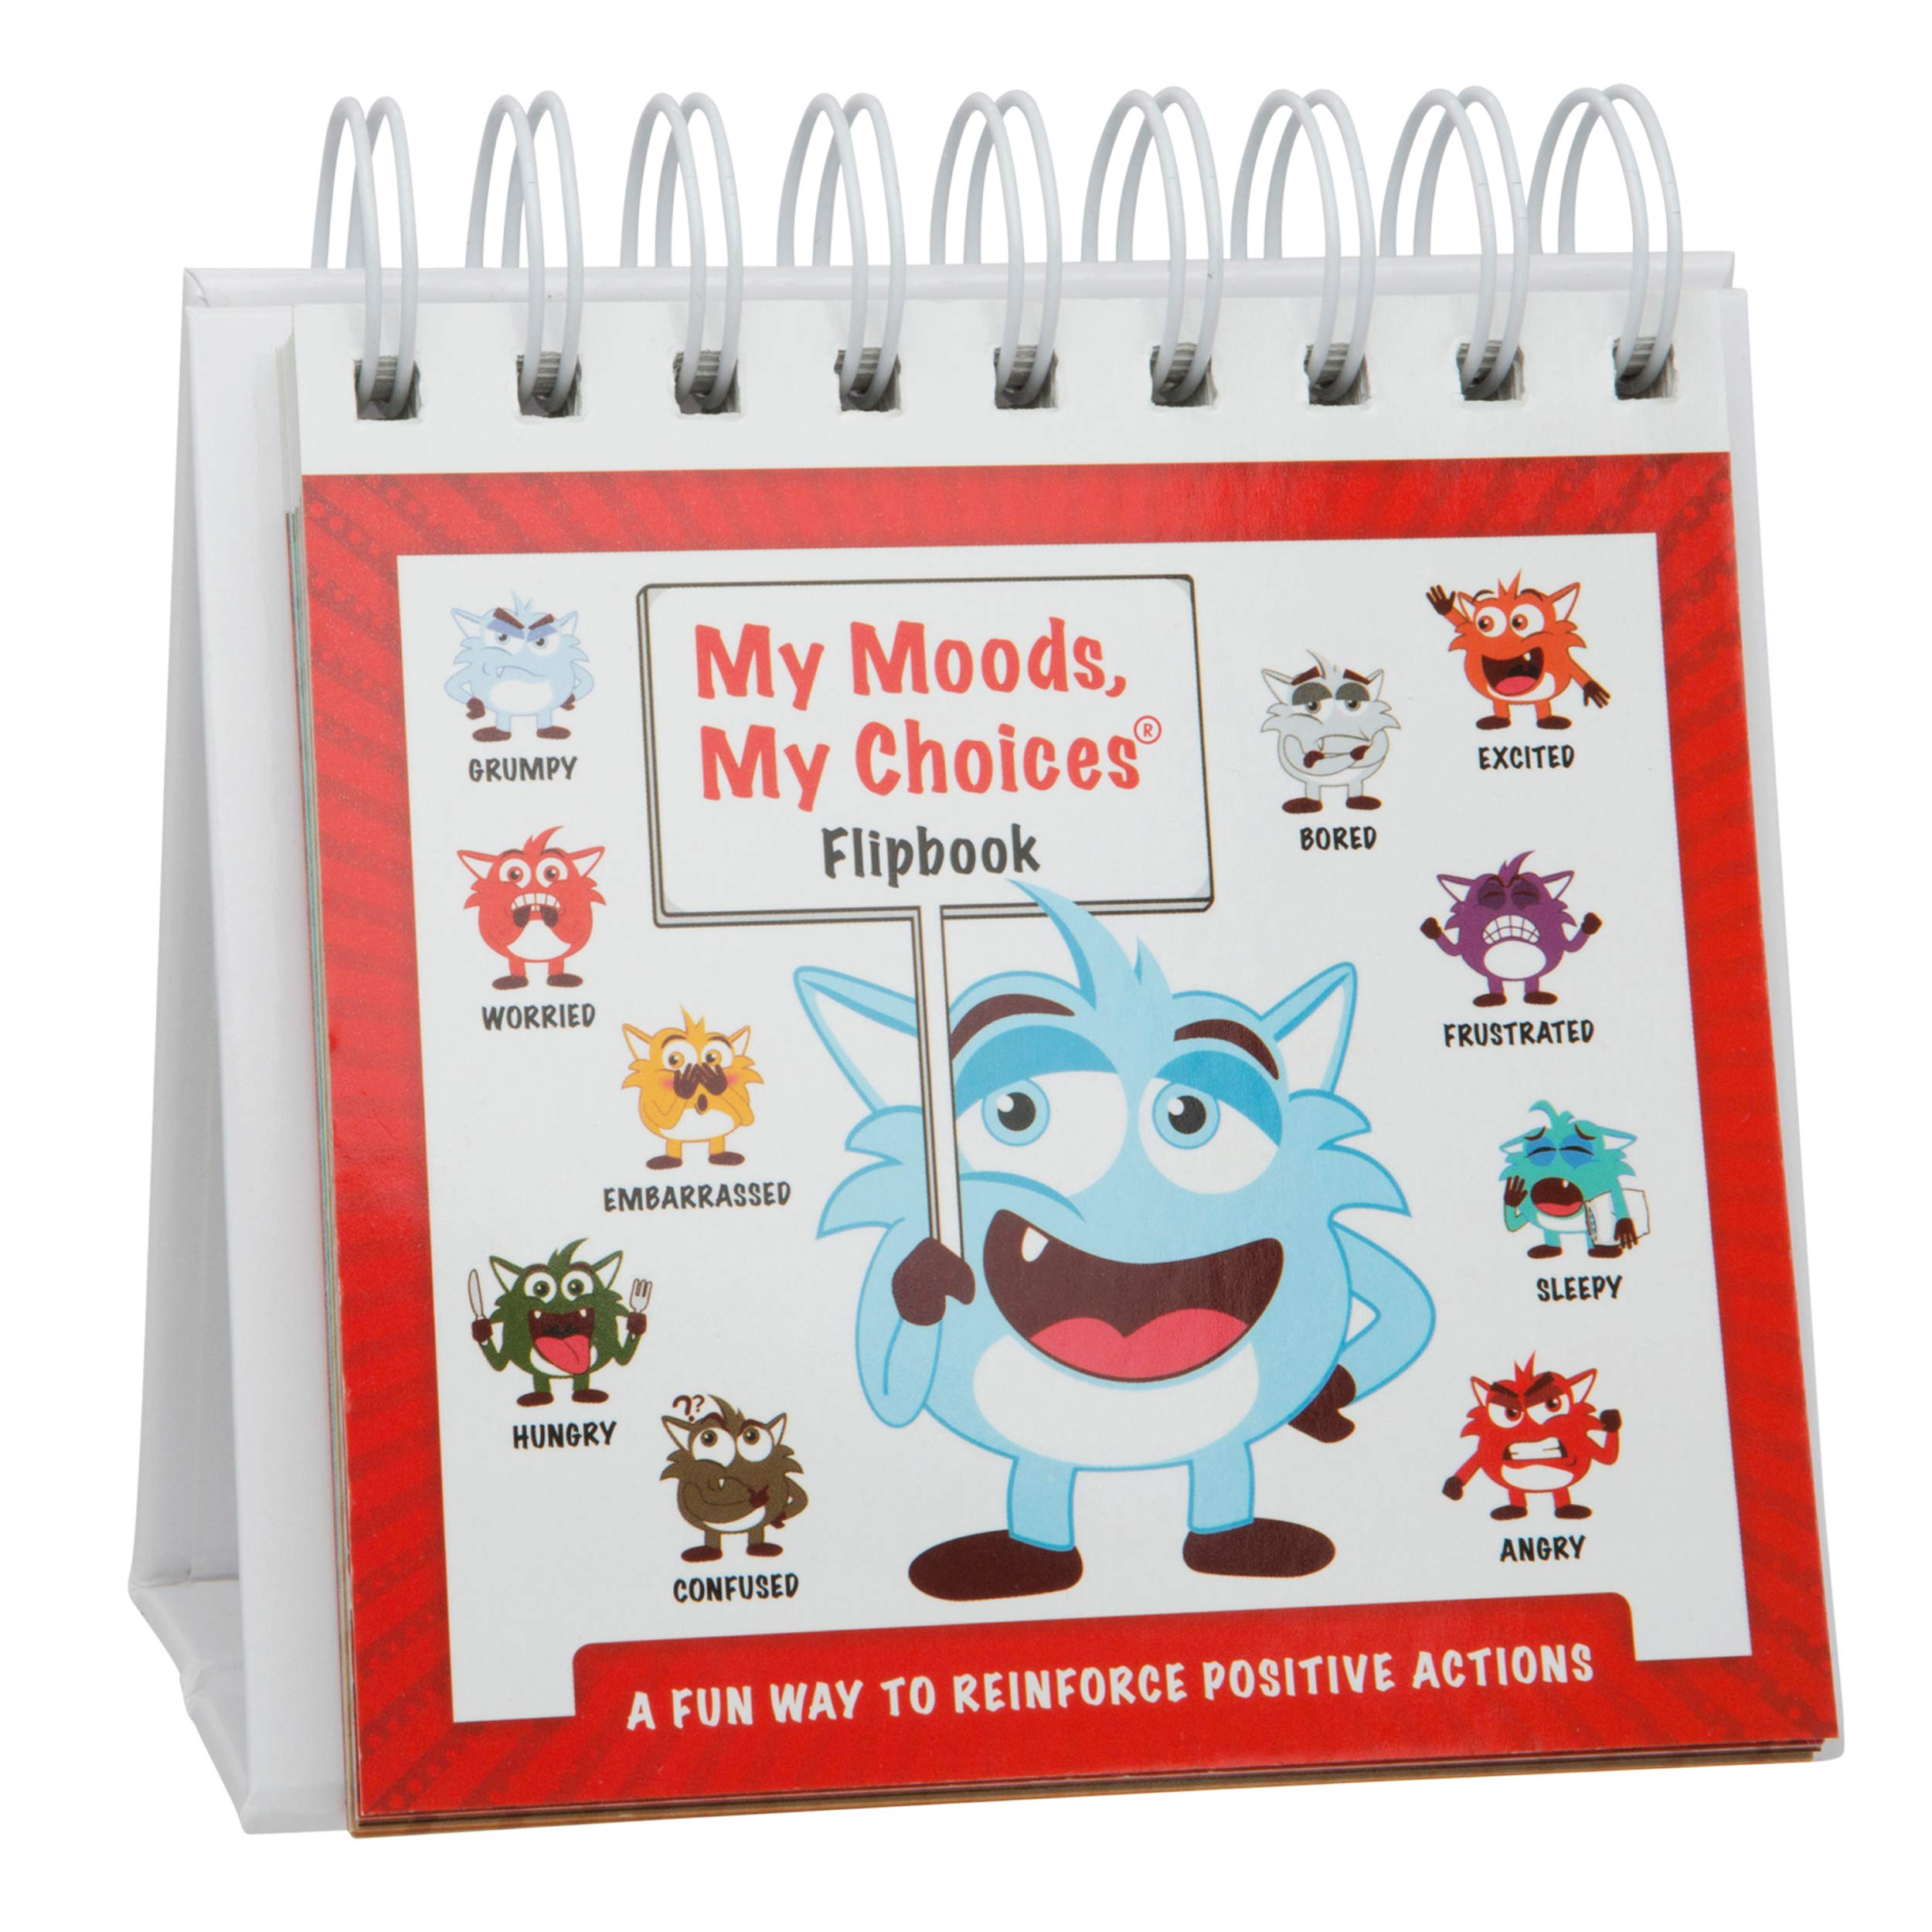 My Moods, My Choices Flipbook for Kids; 20 Different Moods/Emotions; Help Kids Identify Feelings and Make Positive Choices; Laminated Pages by My Moods, My Choices  (Image #1)